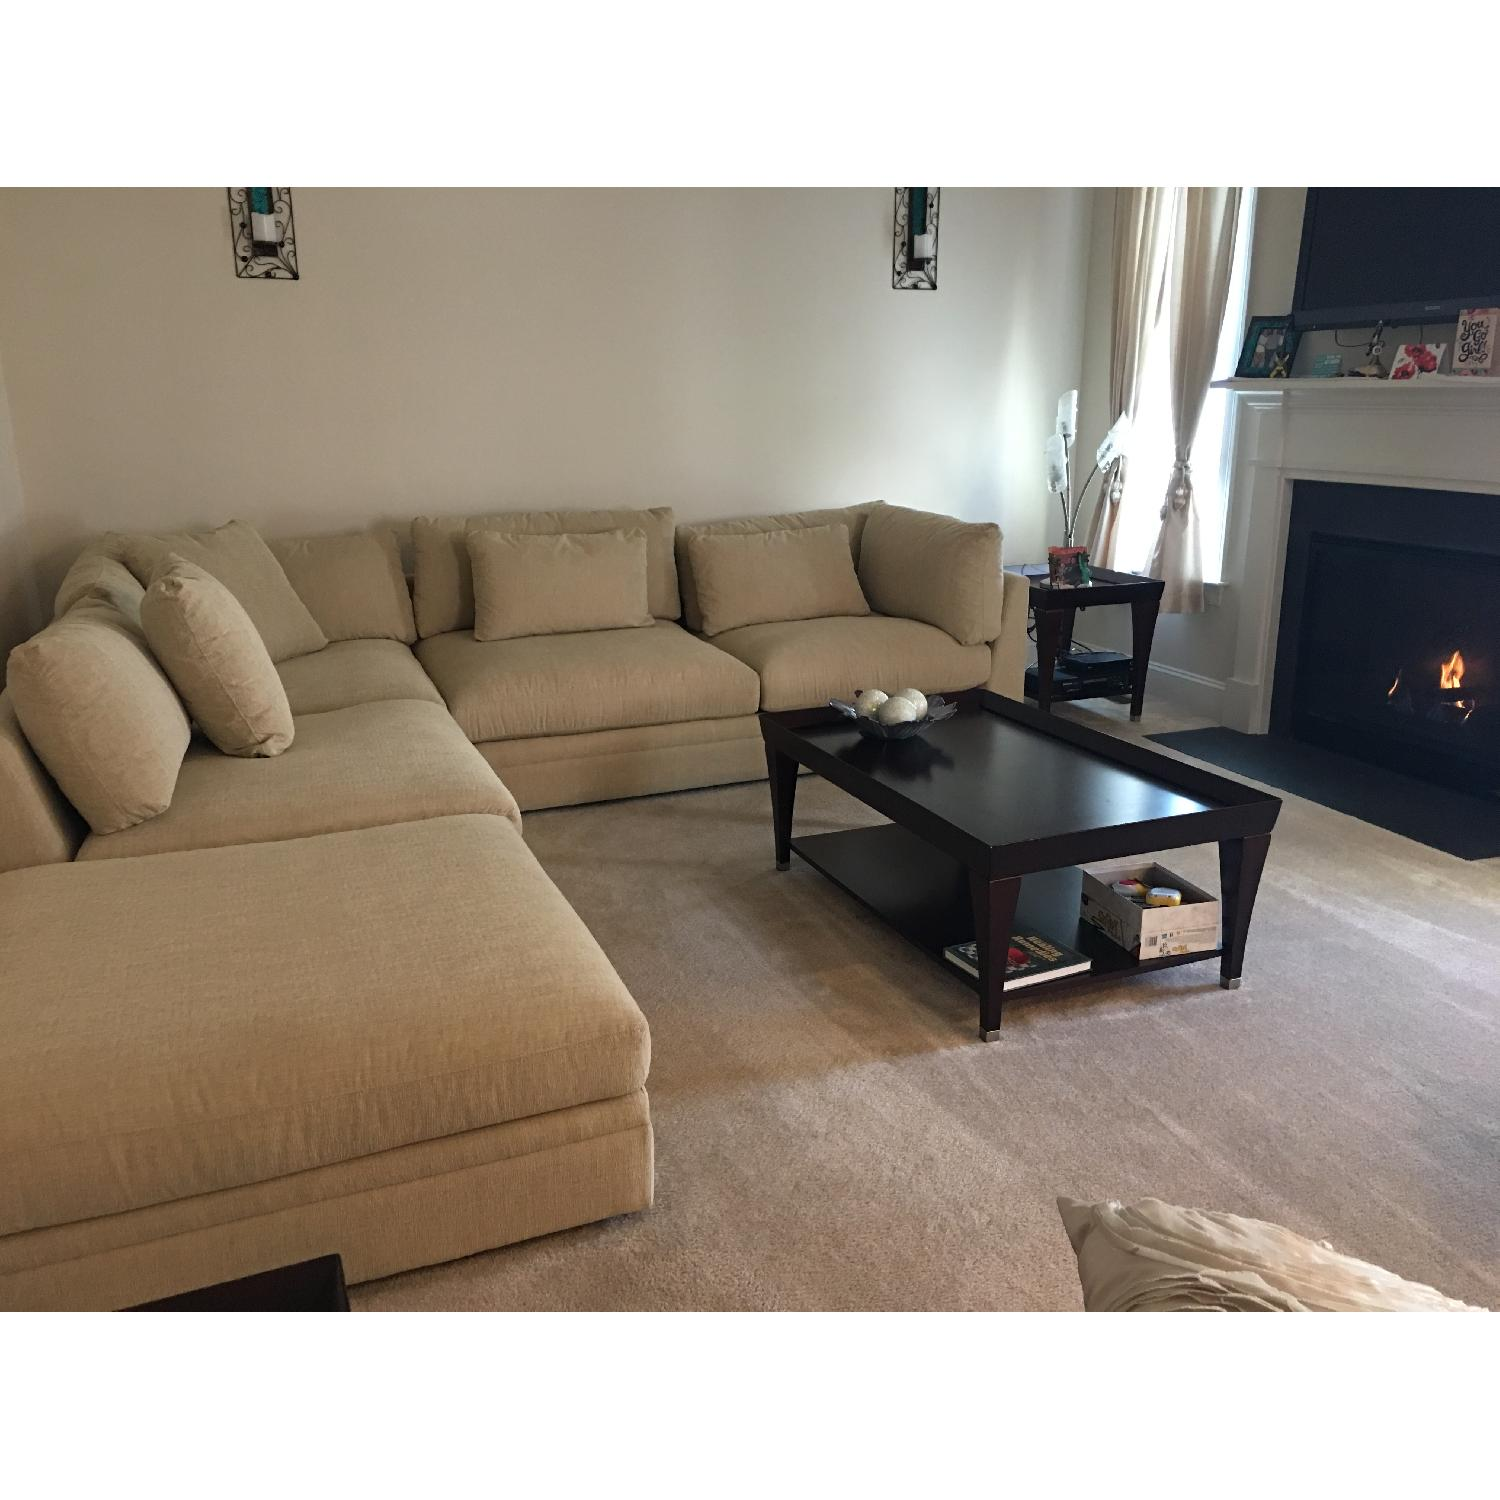 Arhaus Pavo 3 Piece Sectional - image-3